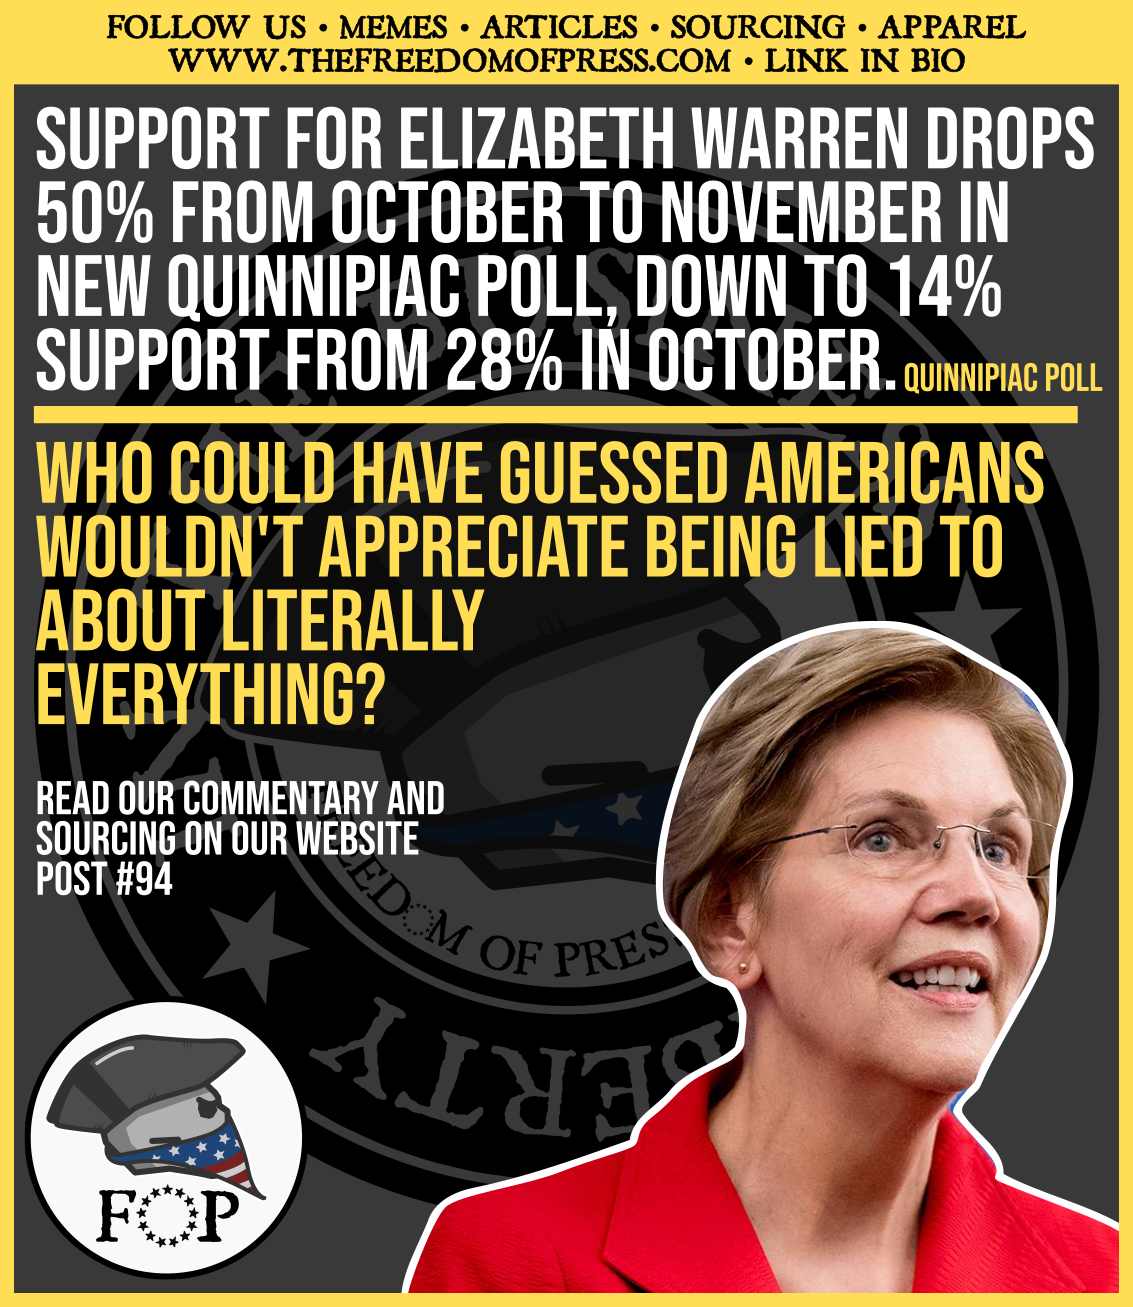 ELIZABETH WARREN AND MEDICARE FOR ALL BOTH TAKE A NOSEDIVE IN MOST RECENT QUINNIPIAC POLLING (#94)